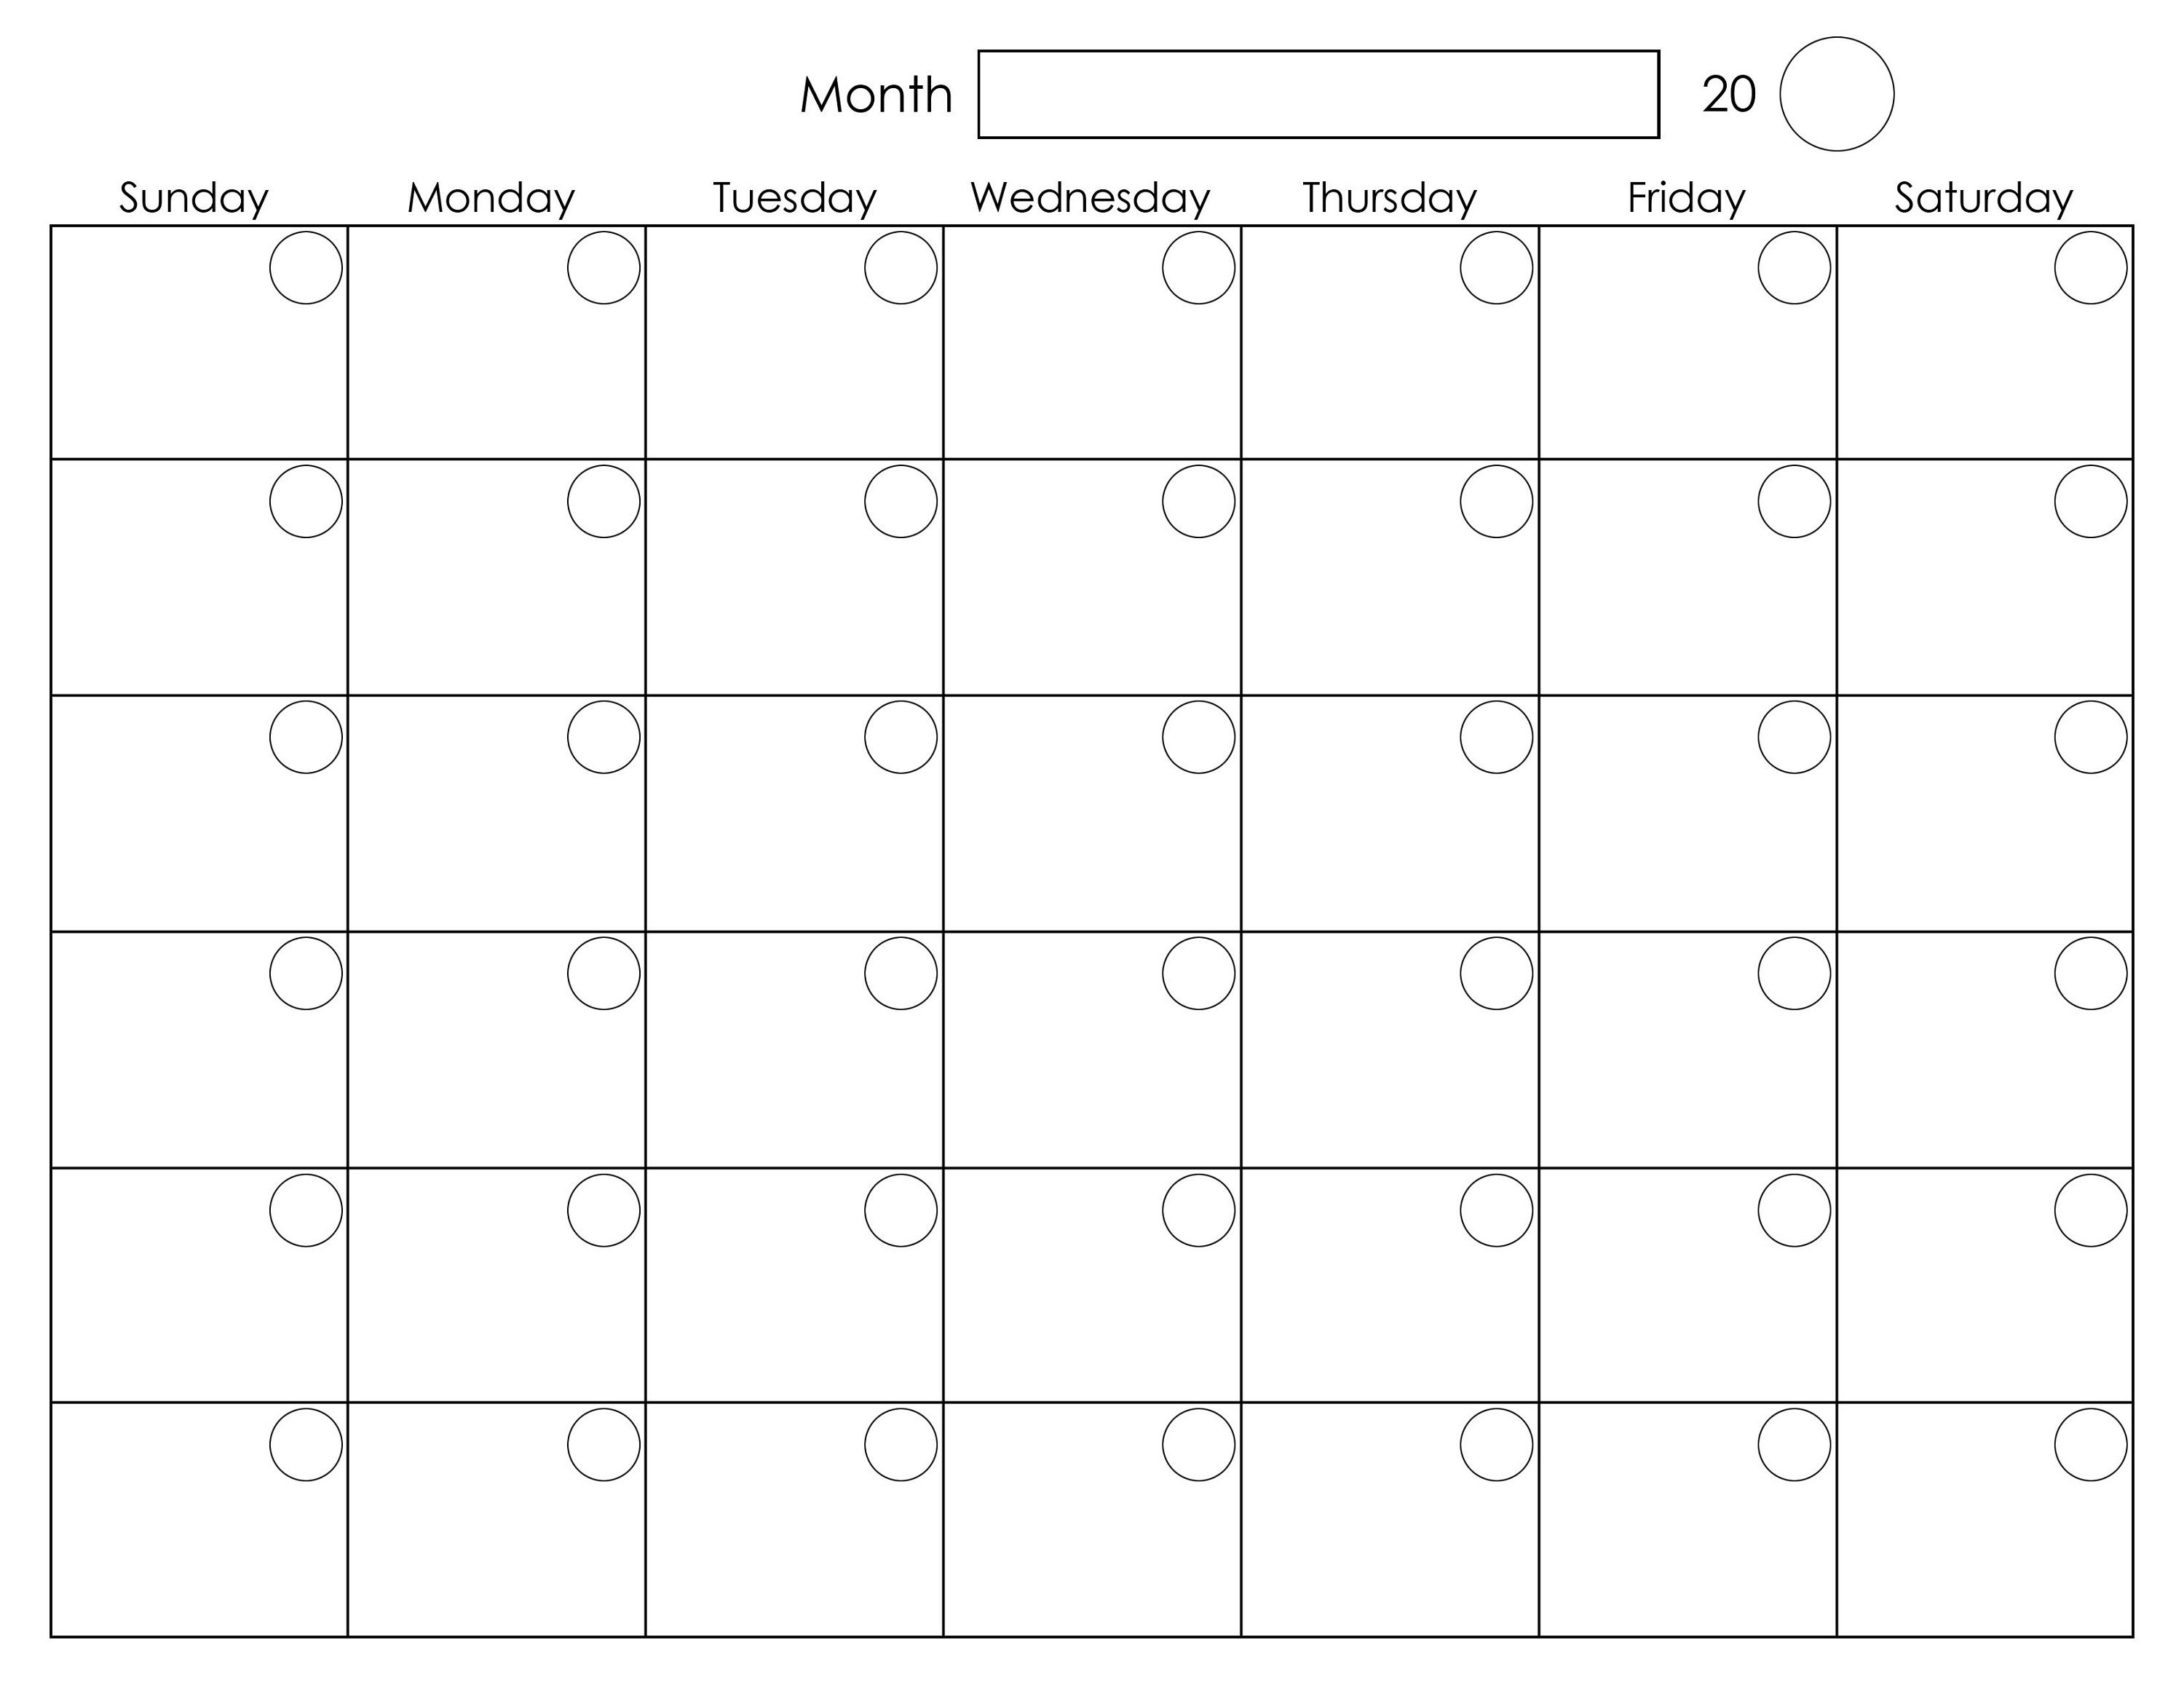 Printable Blank Monthly Calendar | Calendar Template Printable in Blank One Month Calendar Template